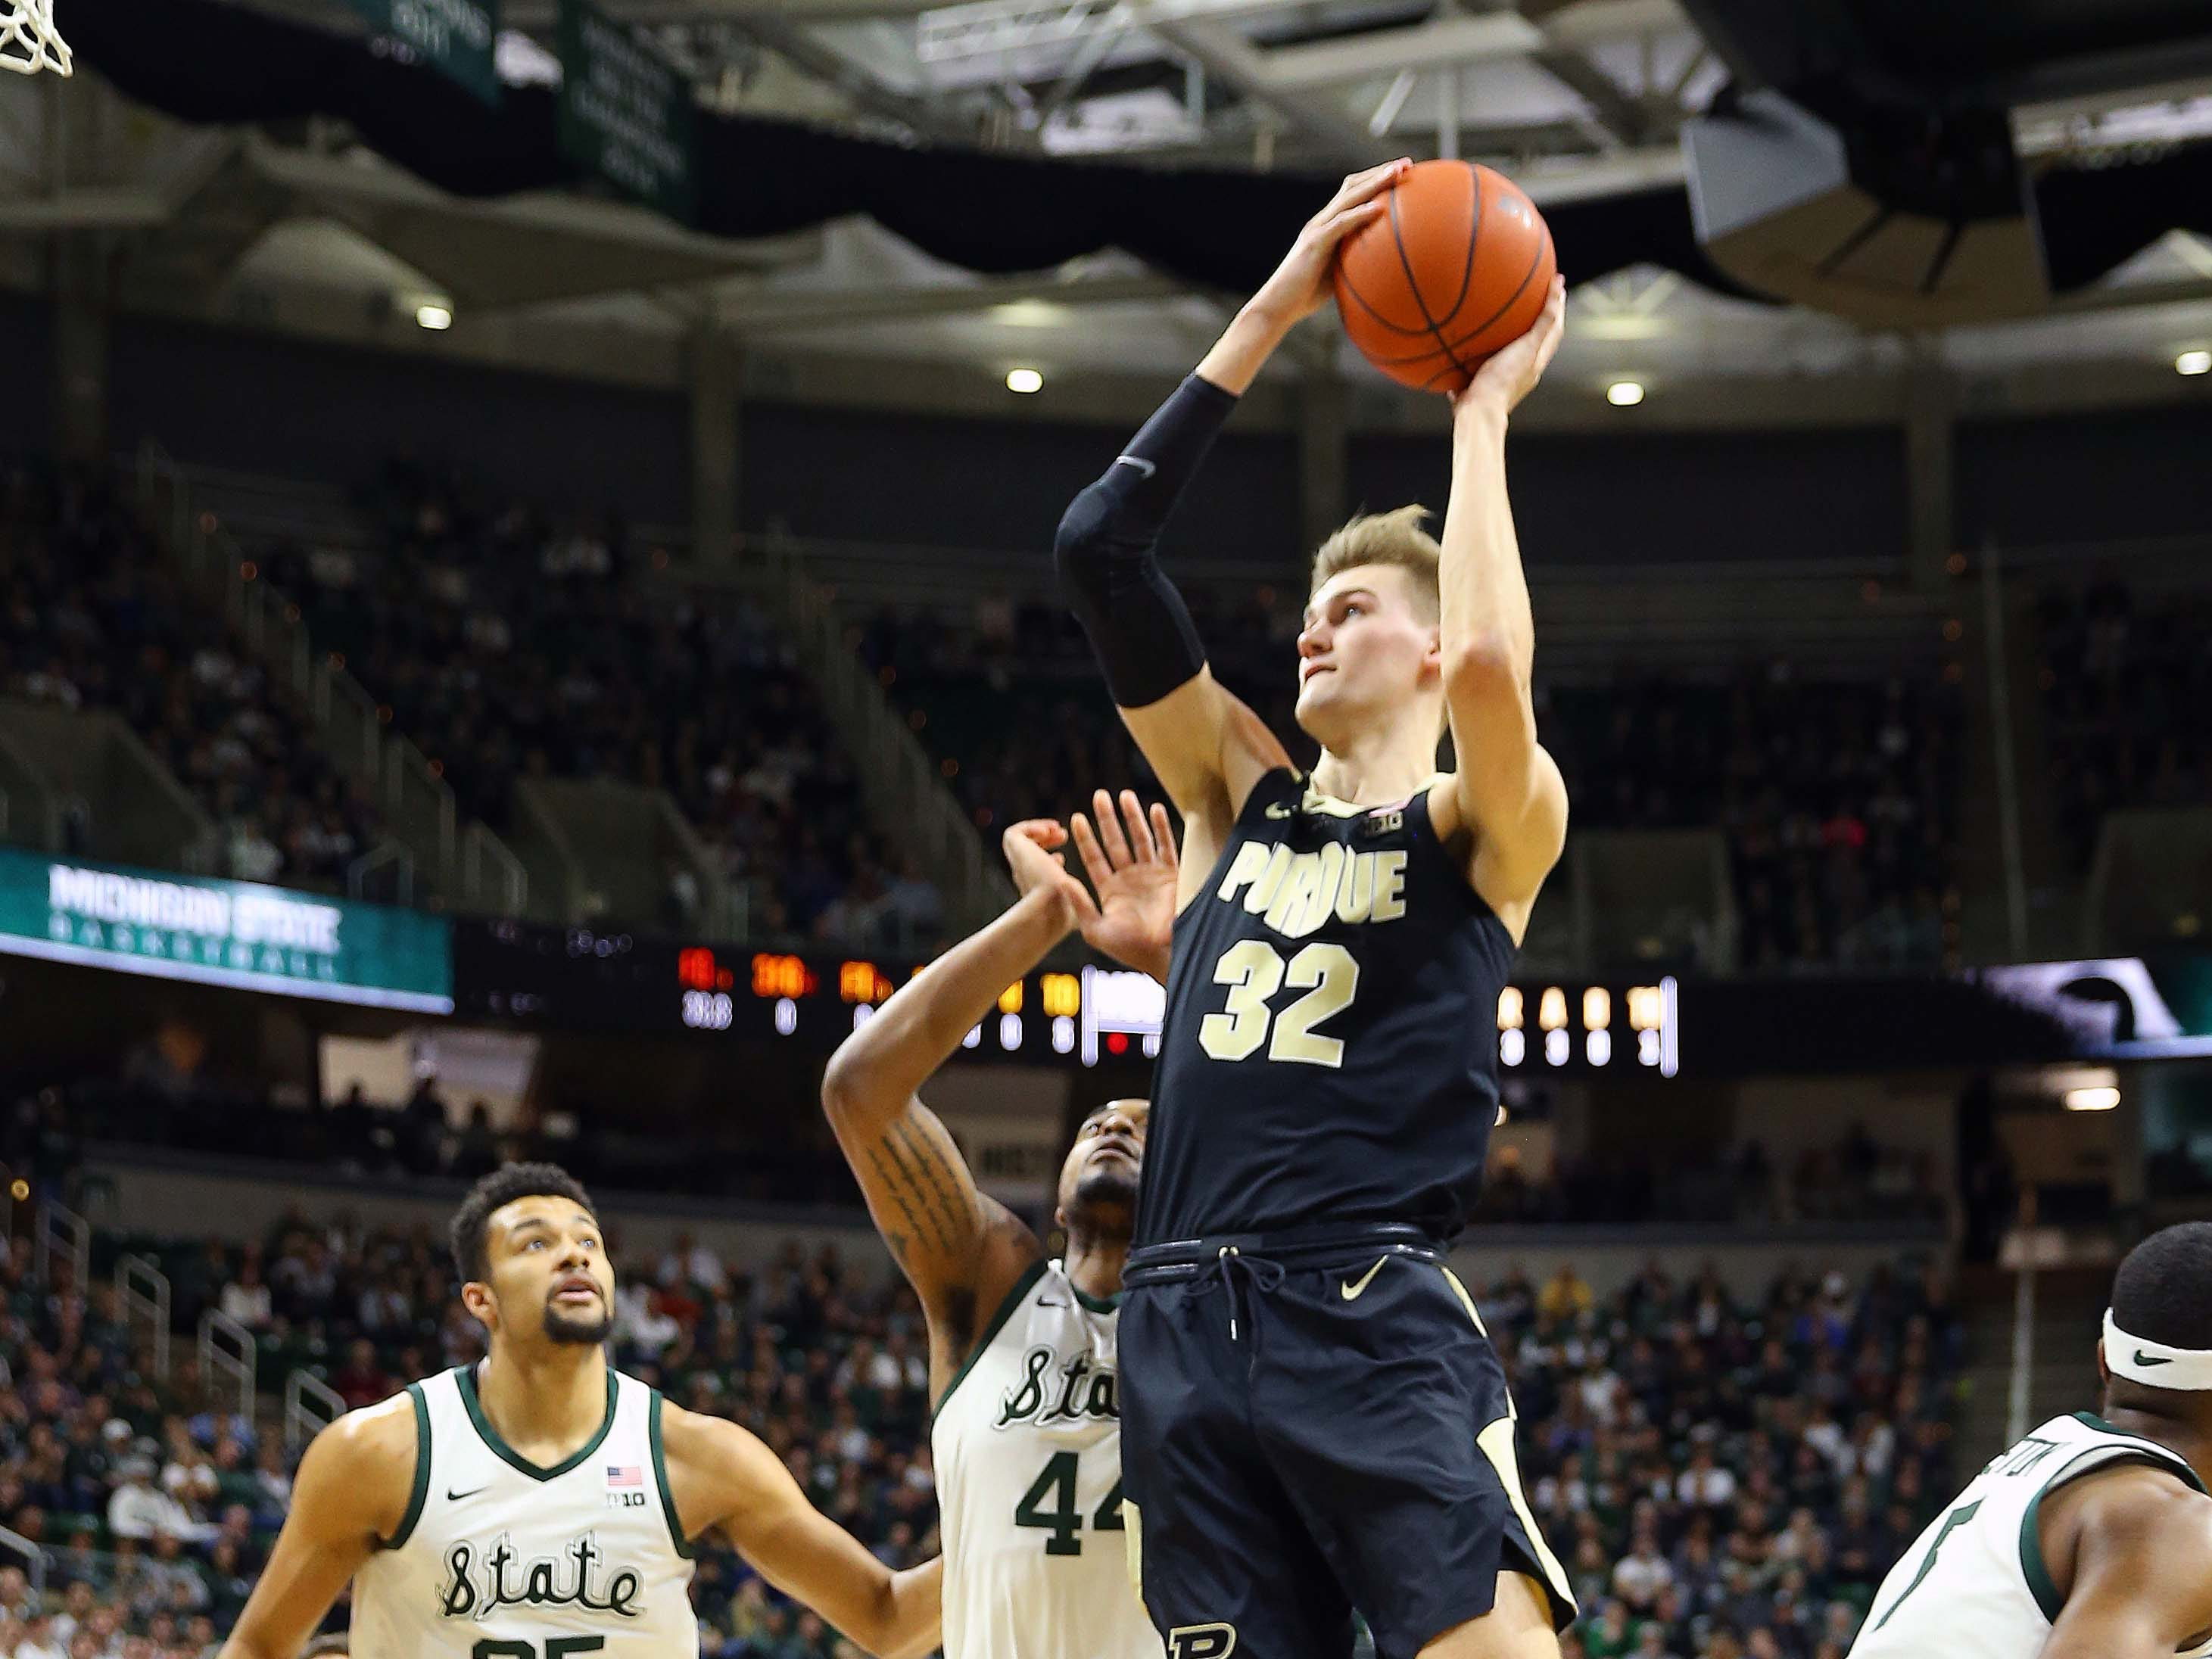 Purdue Boilermakers center Matt Haarms (32) lays the ball up in front of Michigan State Spartans forward Nick Ward (44) during the first half of a game at the Breslin Center.